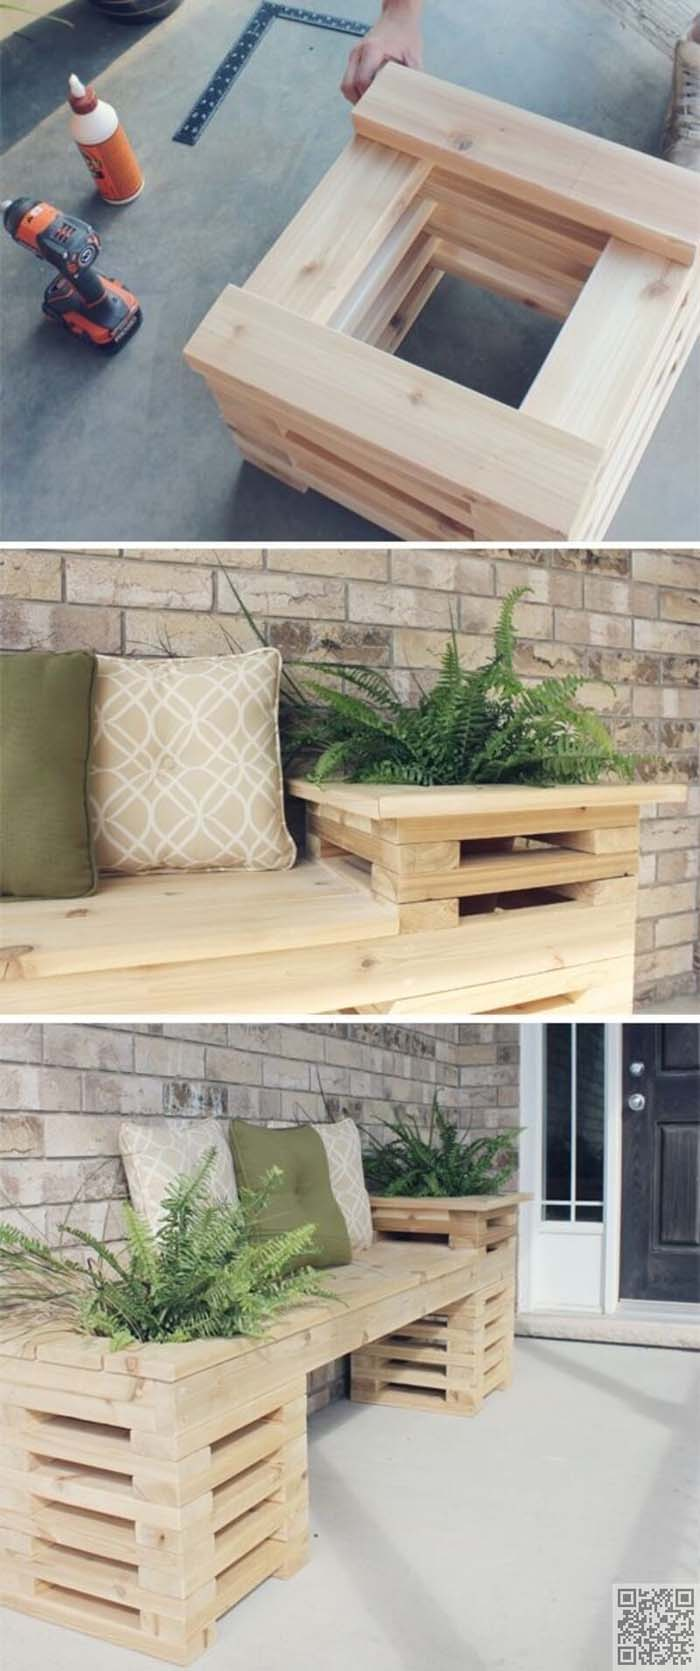 Wooden Plant Boxes with Built-in Bench #gardencontainer #garden #planter #decorhomeideas